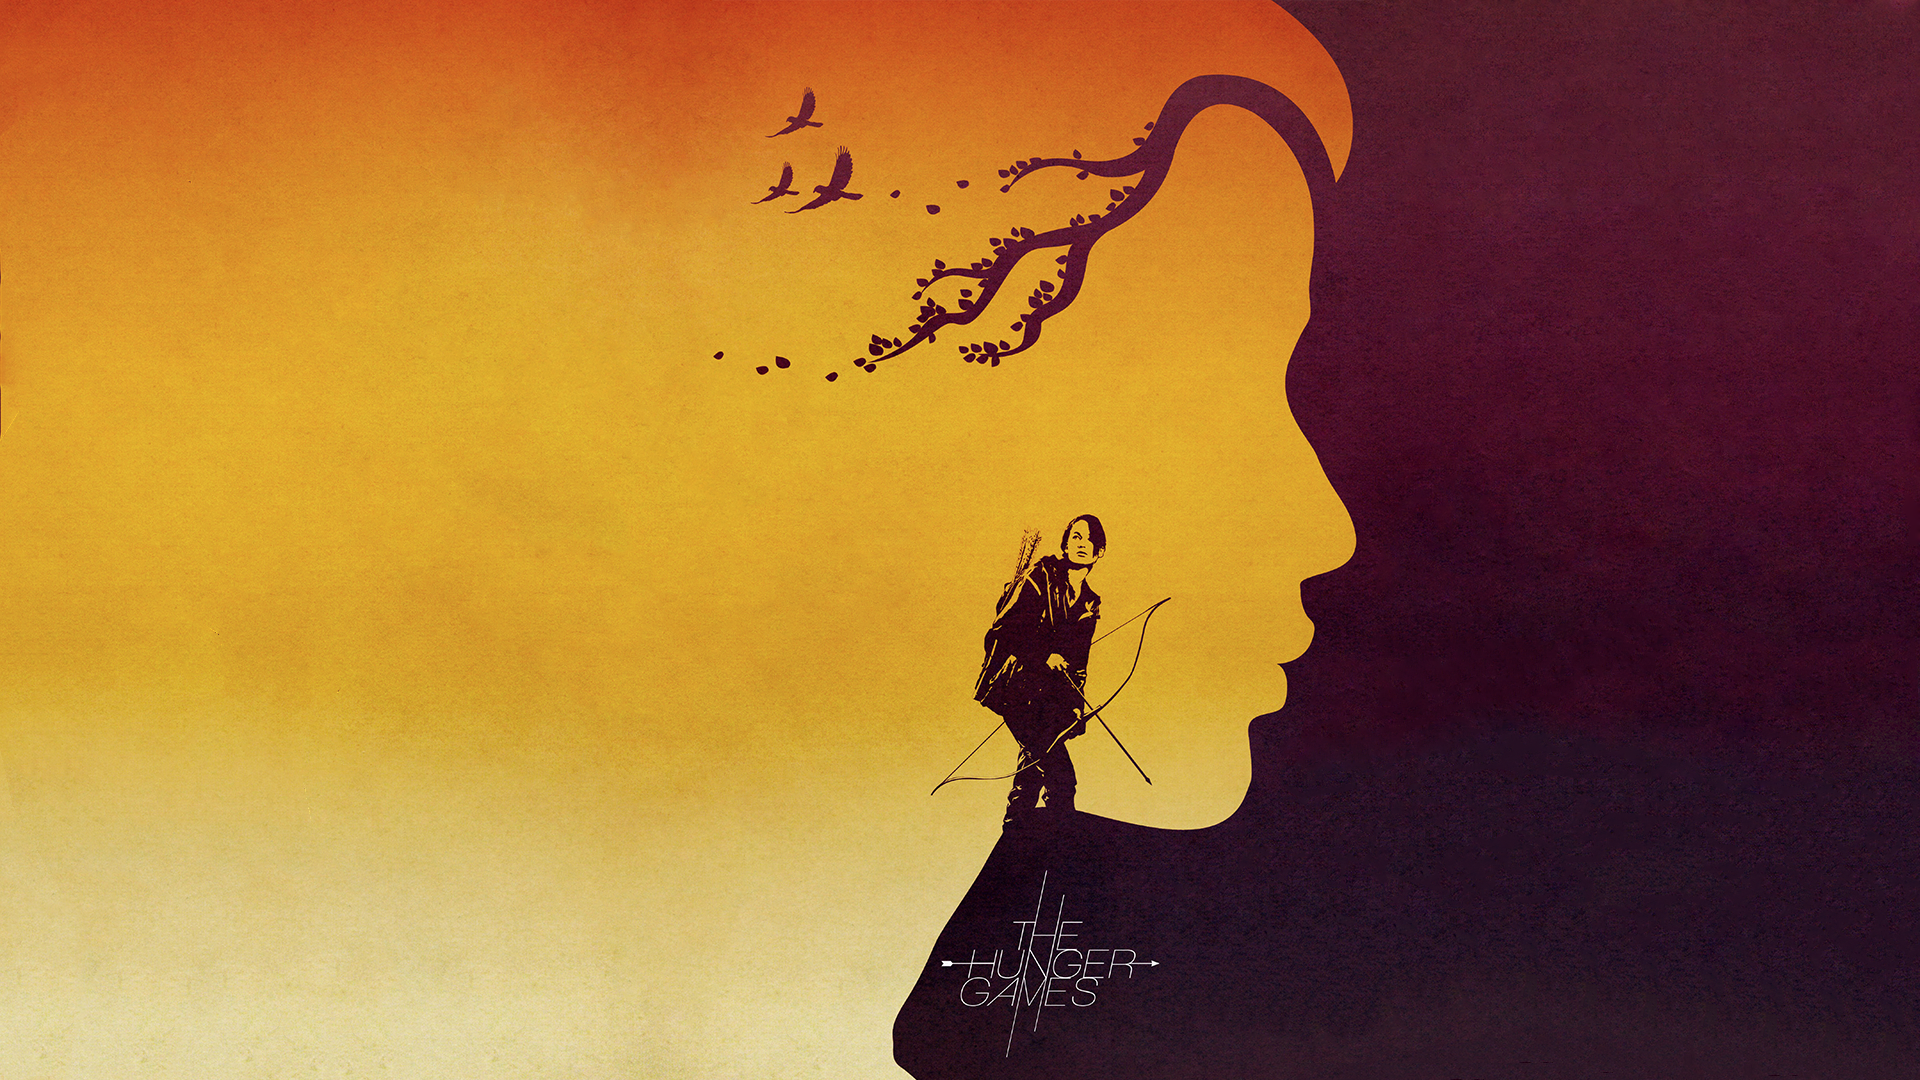 Negative space silhouette of the face of Katniss from the Hunger Games in profile, with a full body silhouette in front